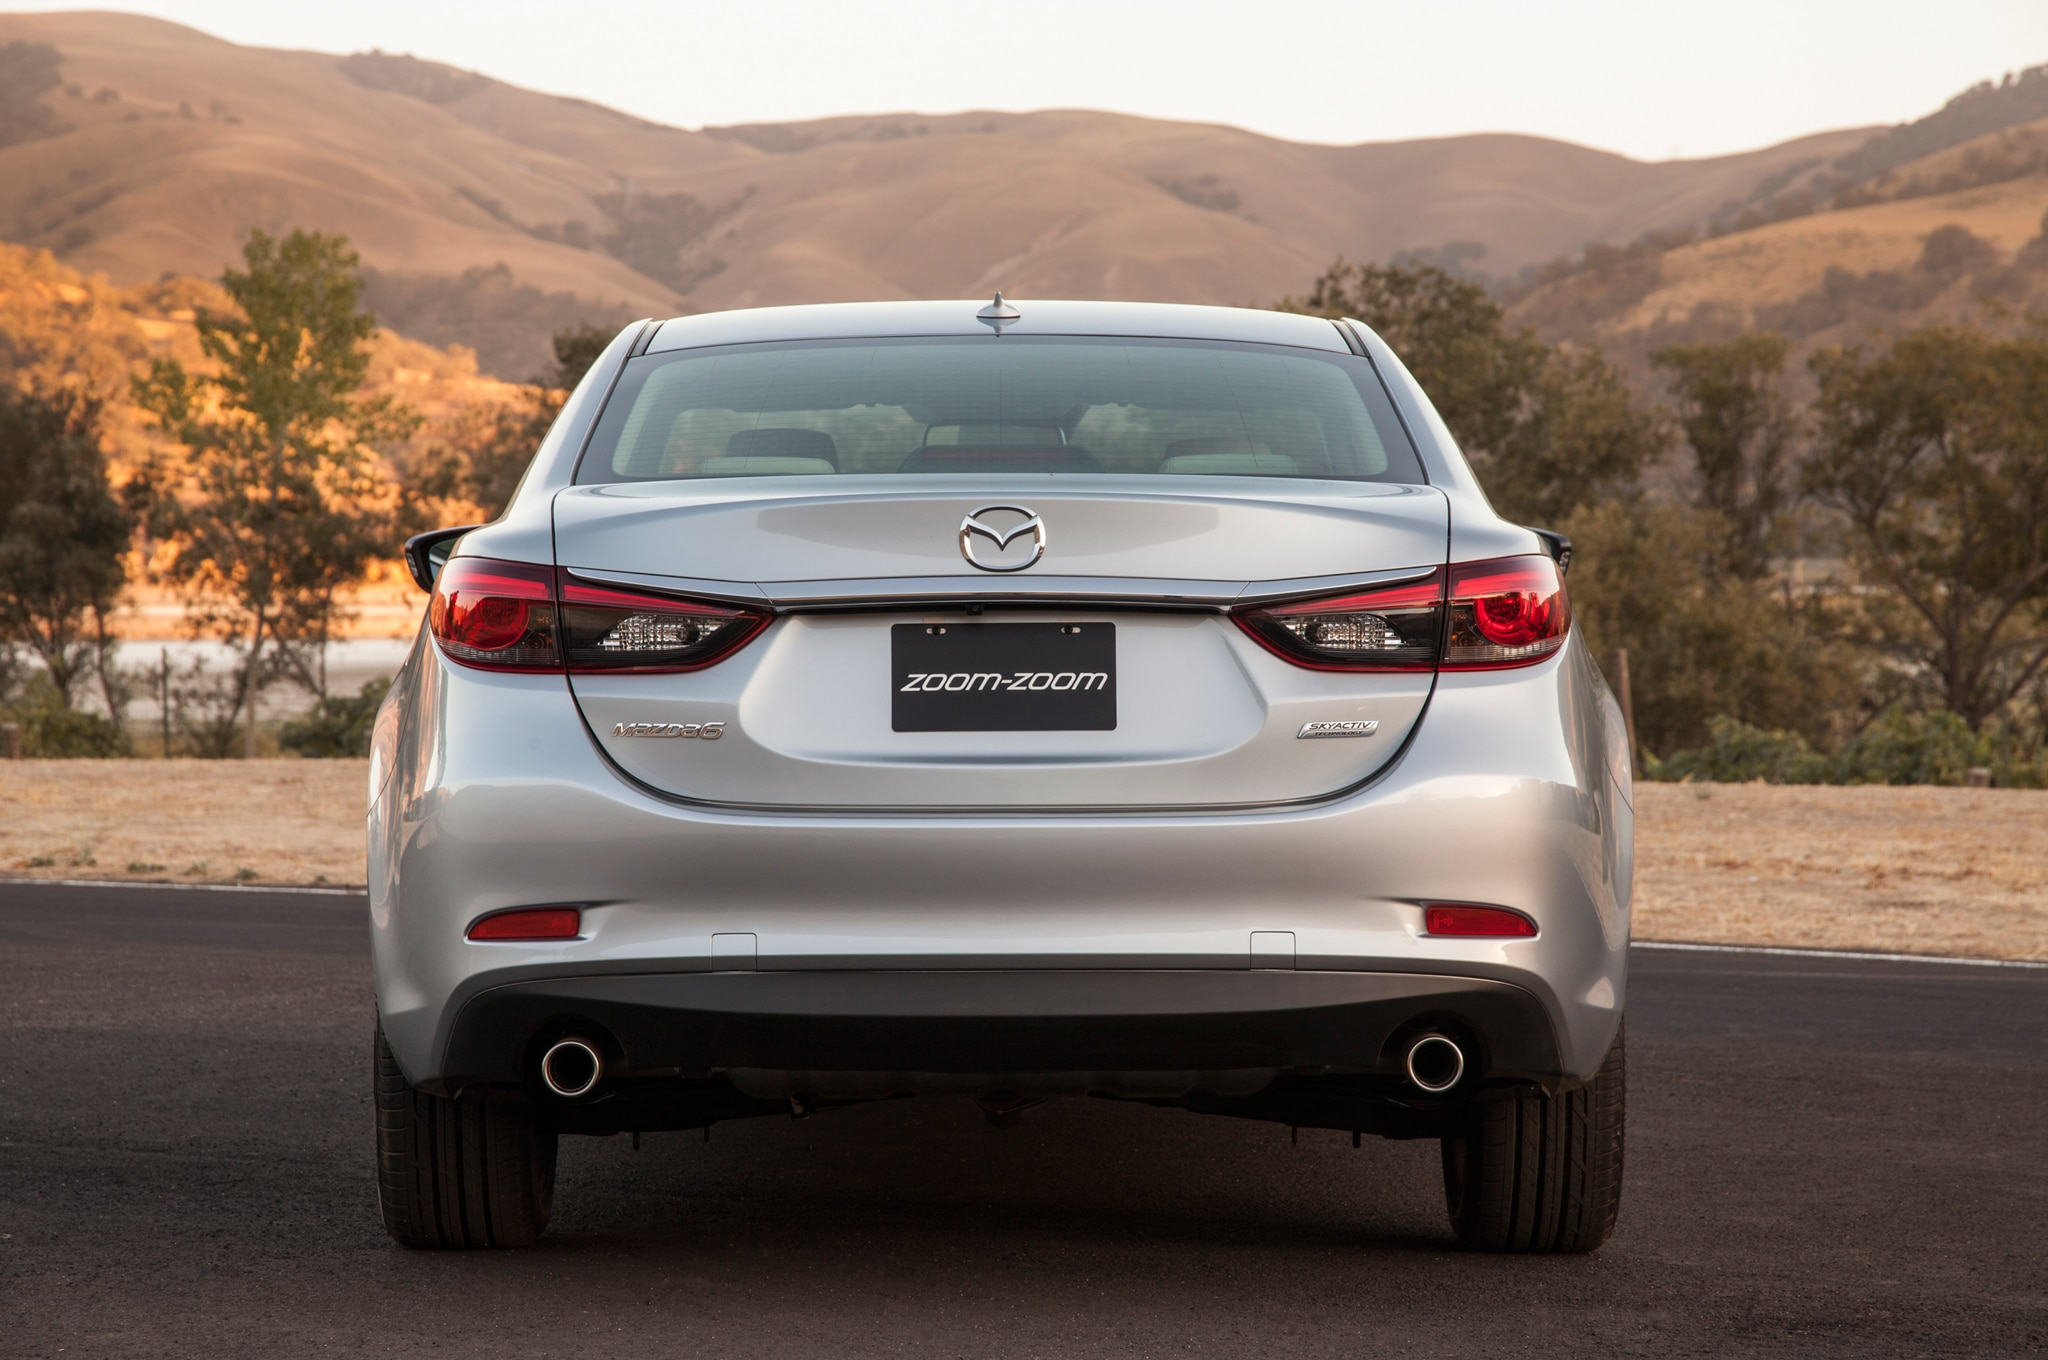 2016 Mazda 6 Refreshed for L.A.